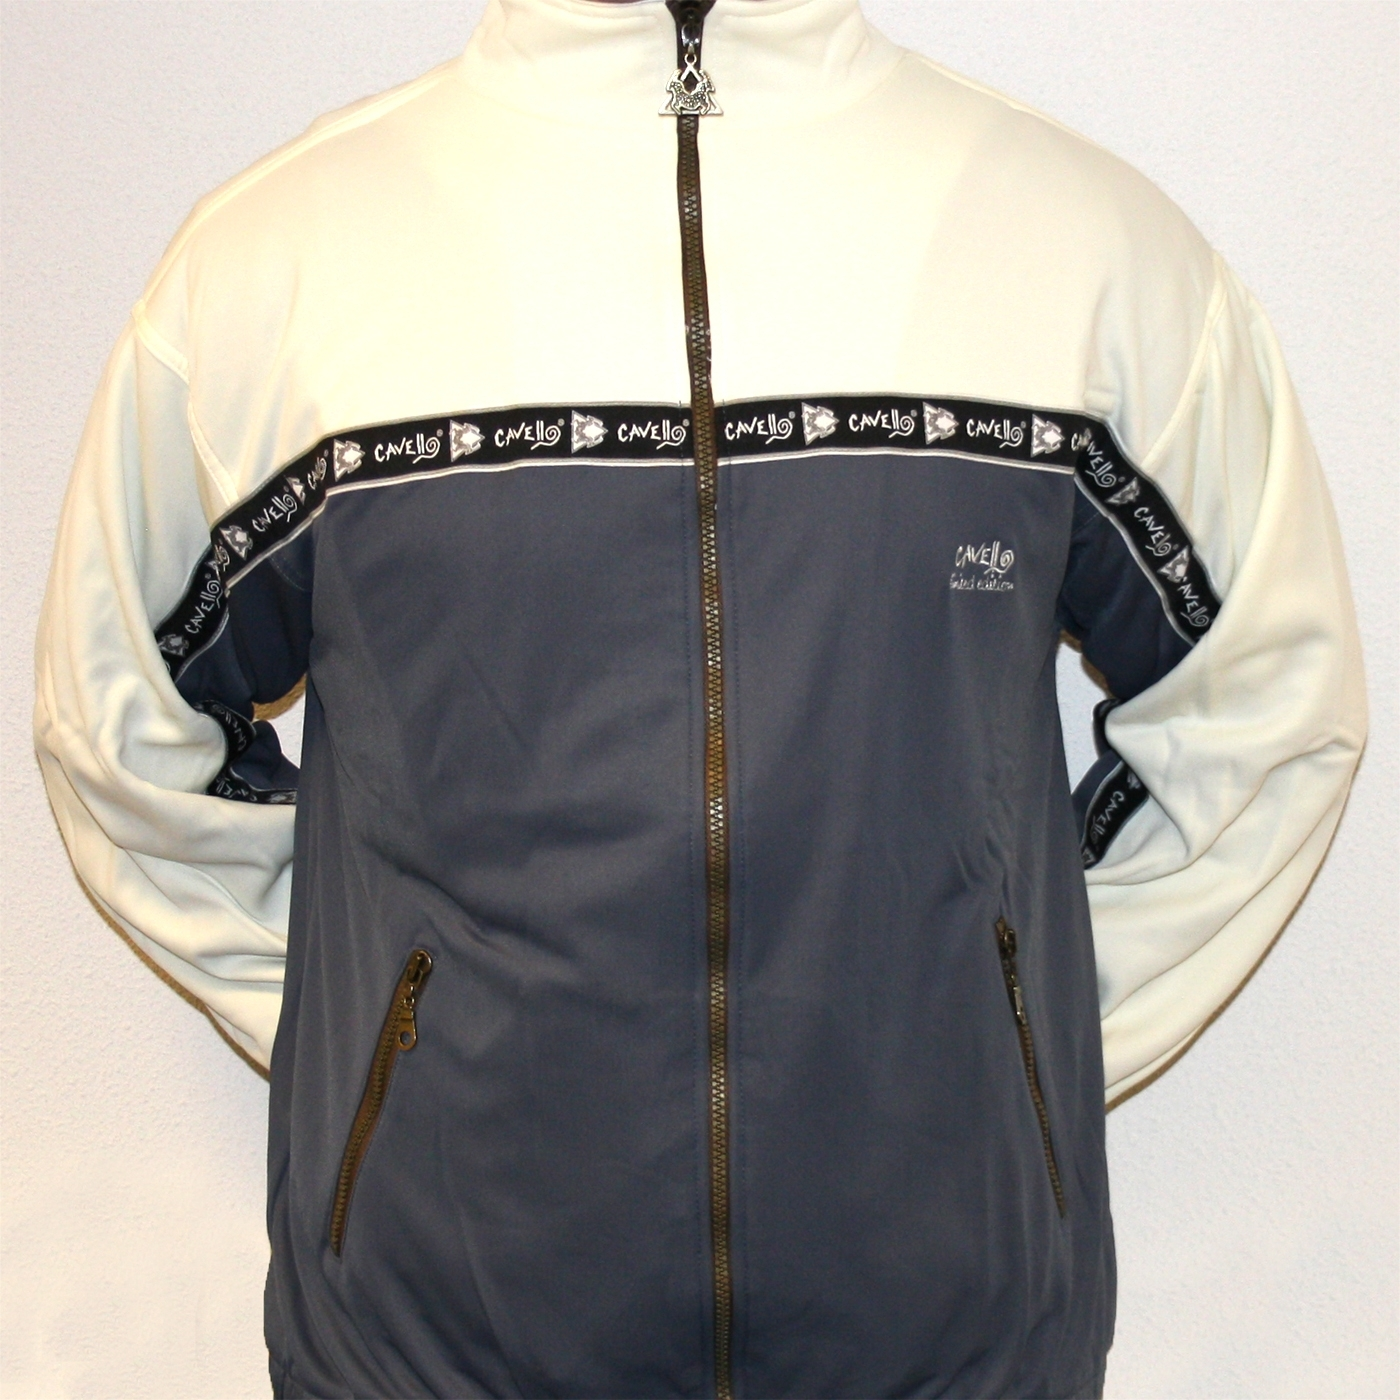 Cavello Limited Edition Creme Dark Grey Cavo210 Jacket